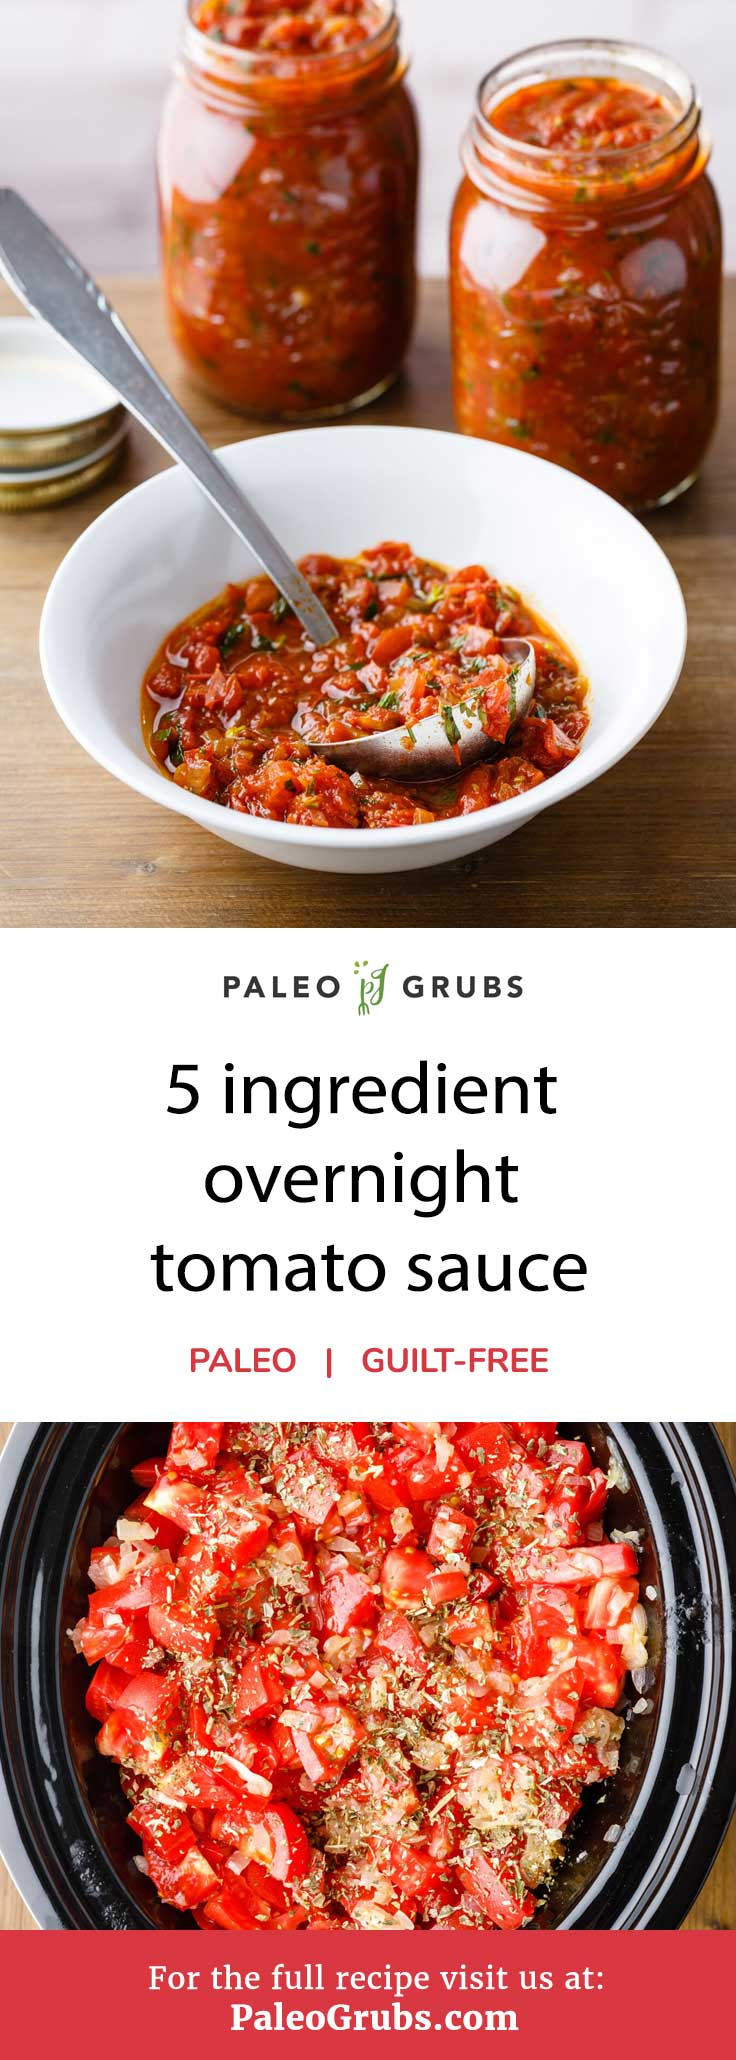 how to make and store tomato sauce